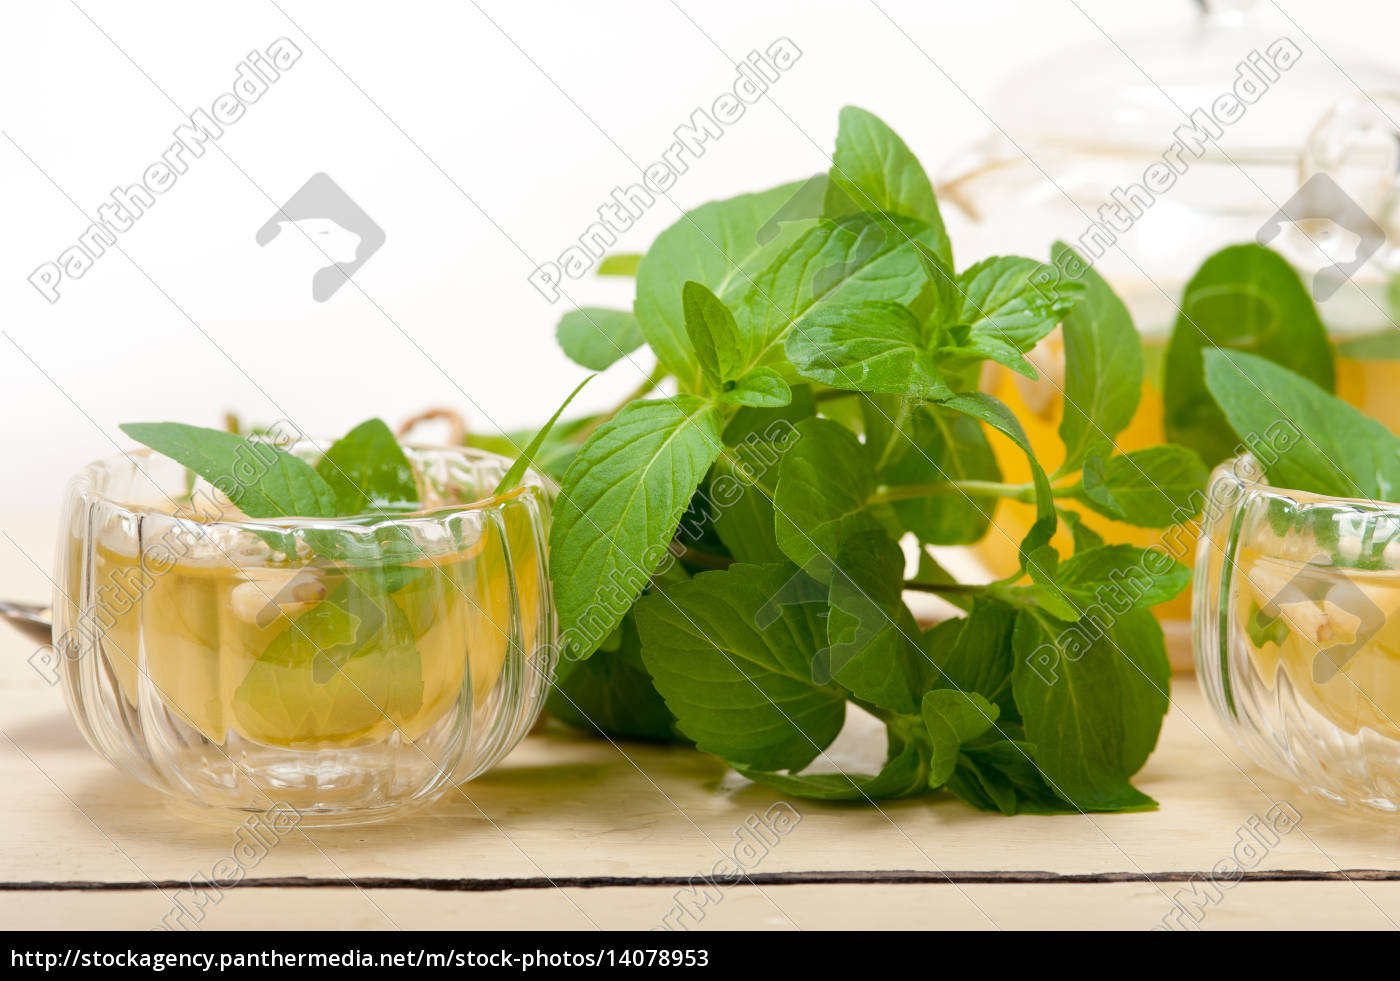 arab, traditional, mint, and, pine, nuts - 14078953